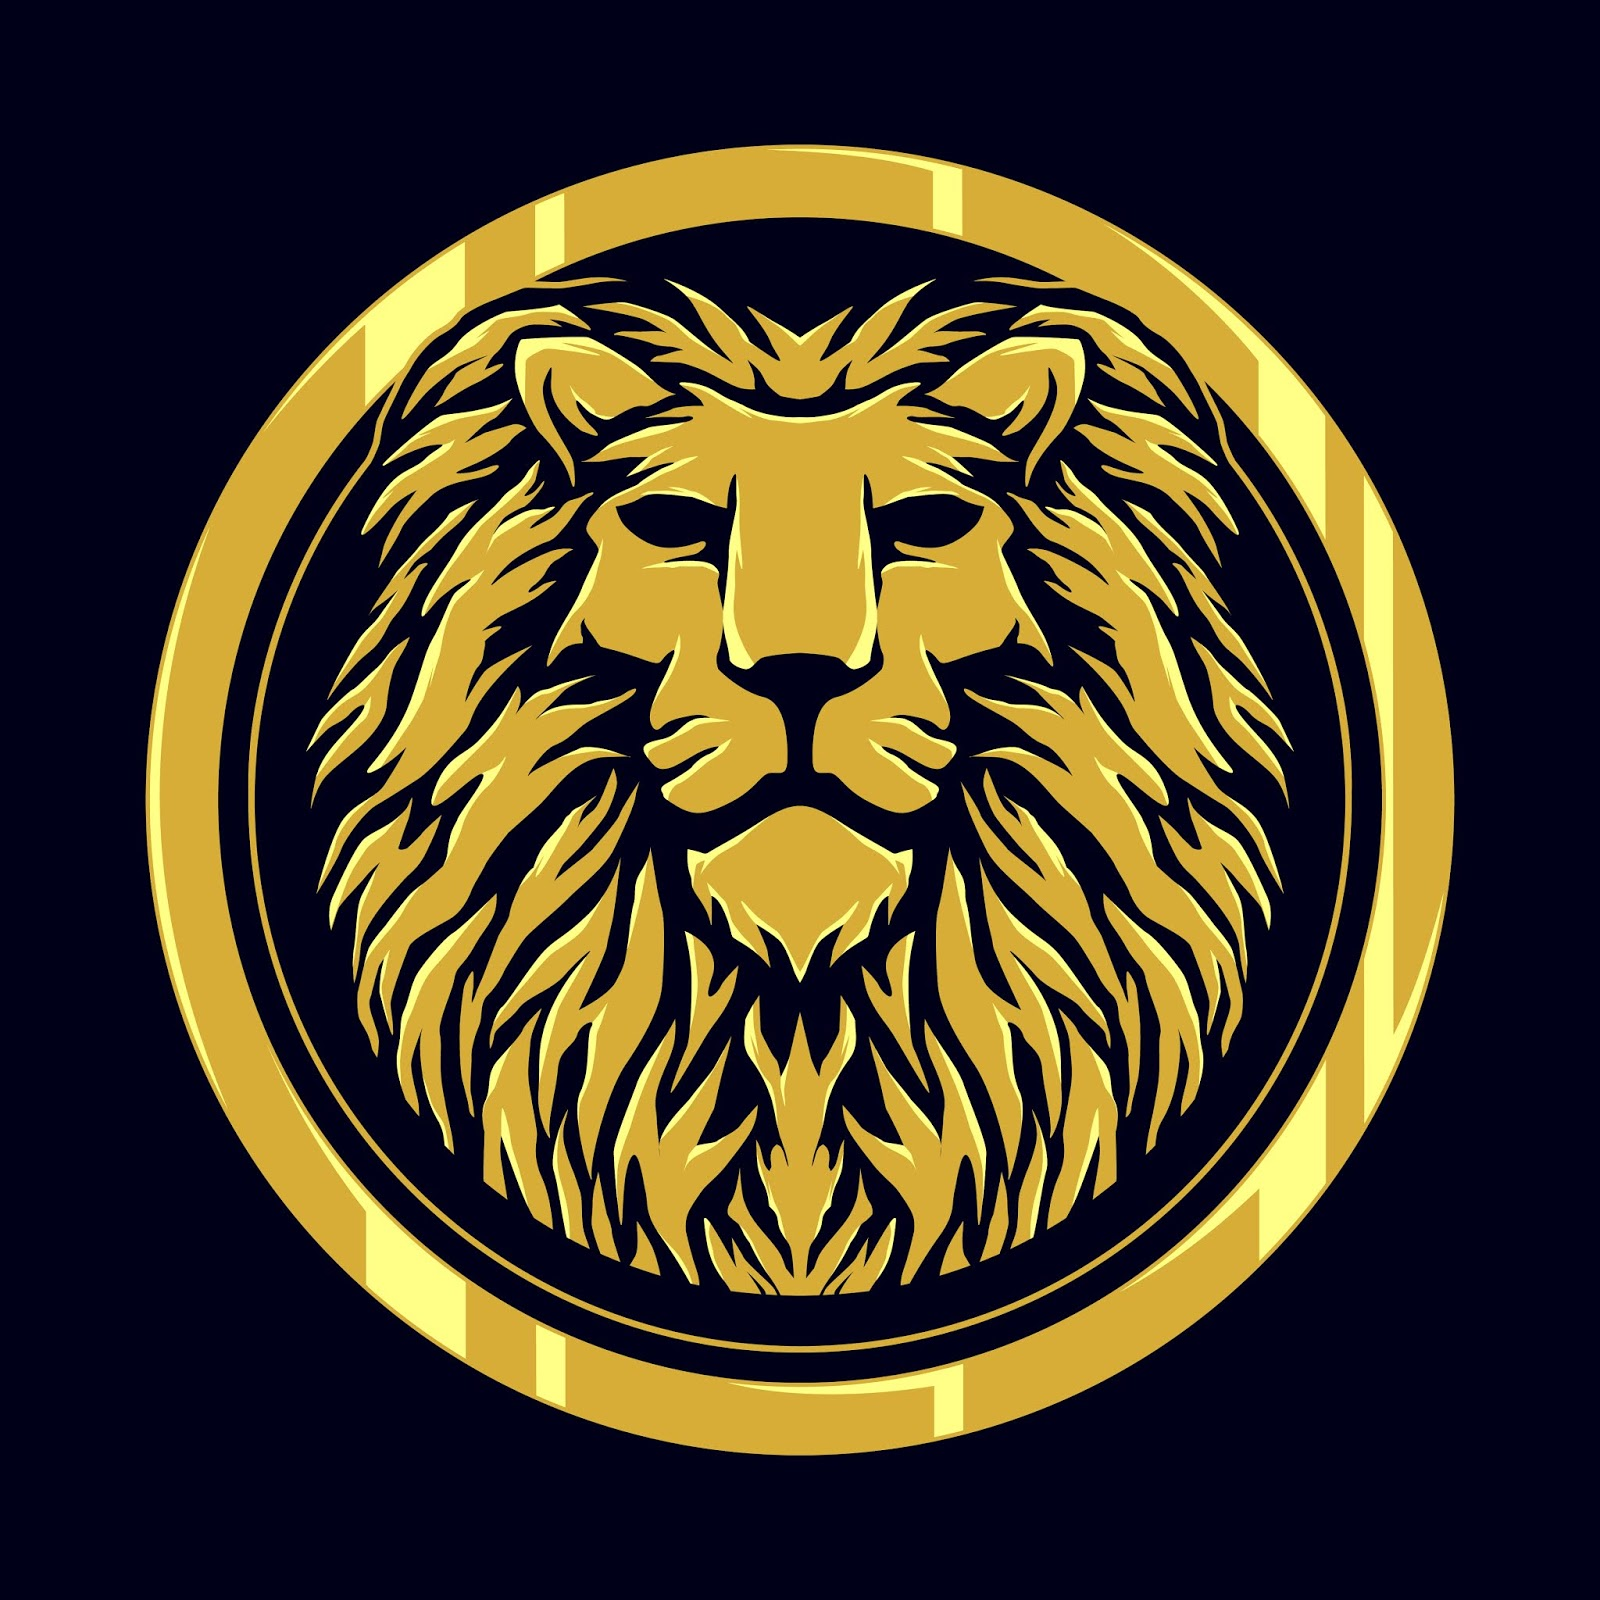 Head Lion Gold Logo Free Download Vector CDR, AI, EPS and PNG Formats